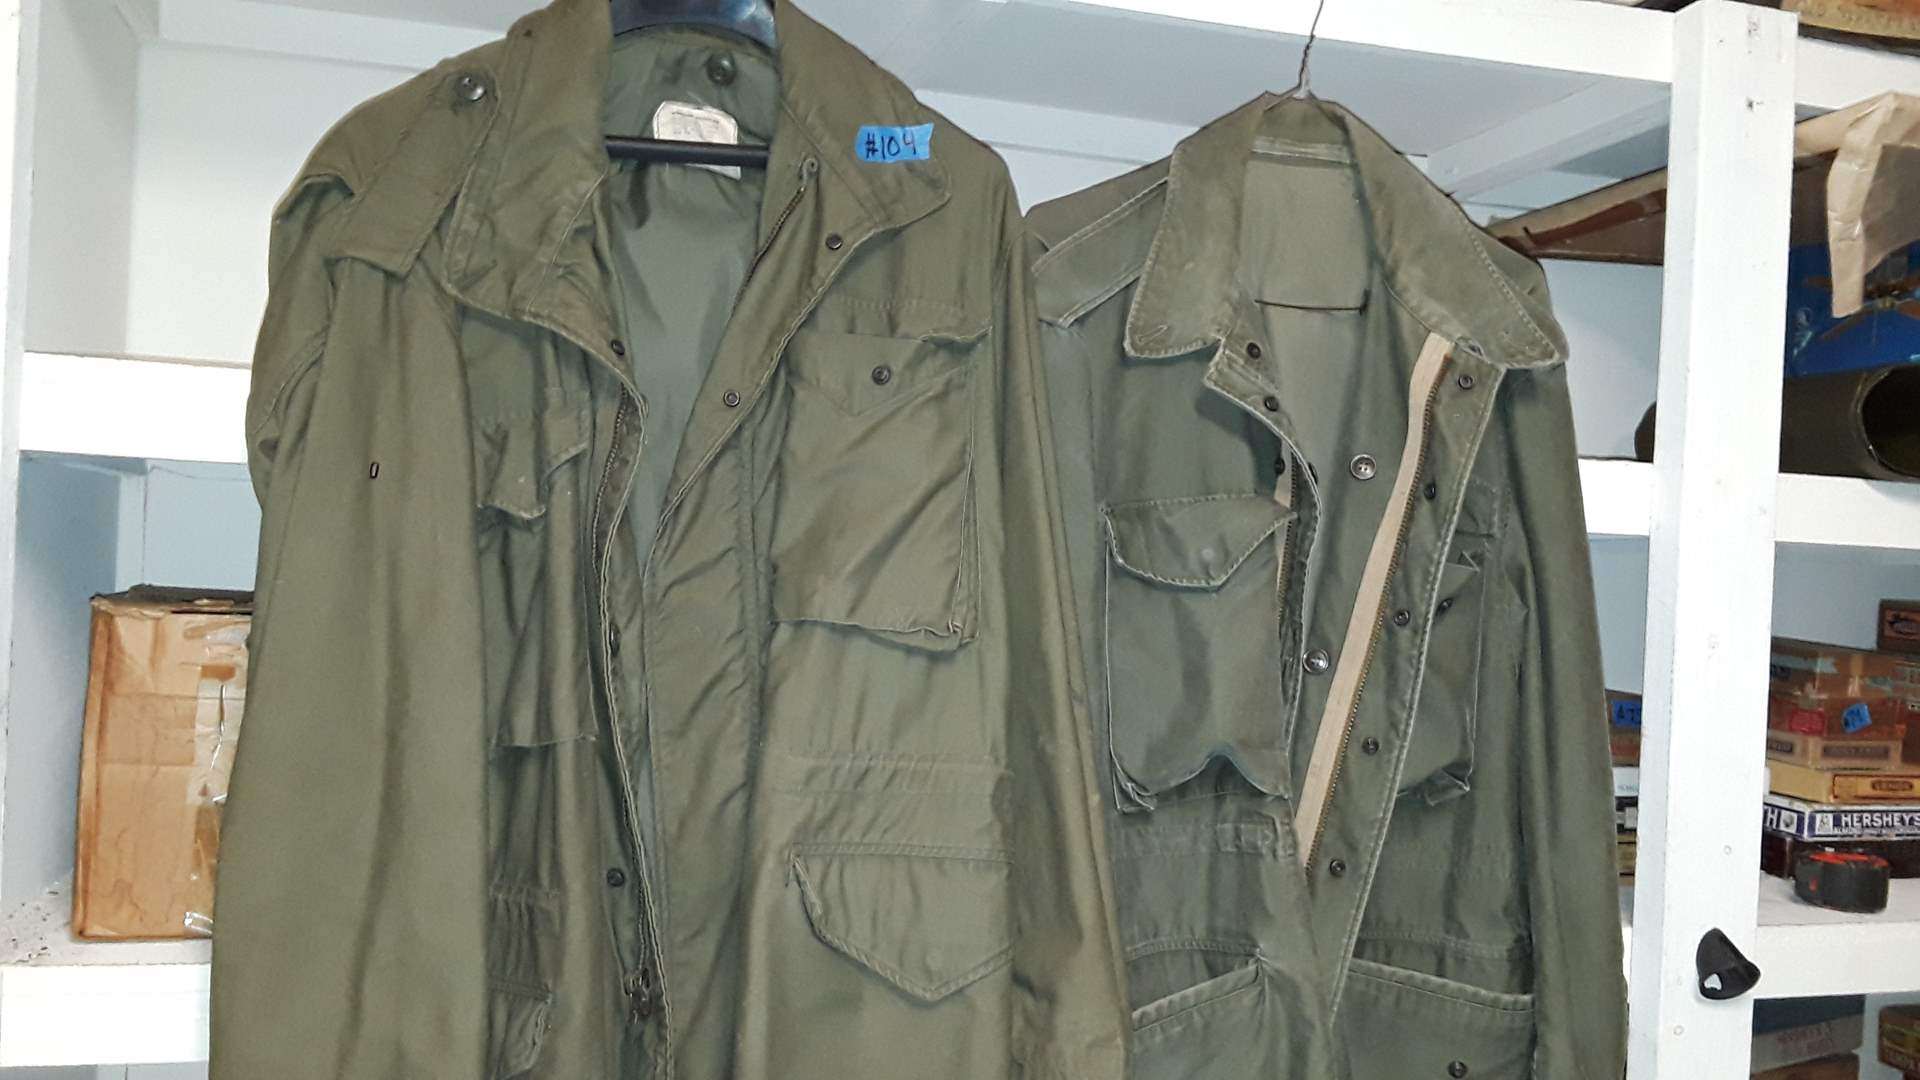 Lot # 104 - 2 VINTAGE MILITARY COATS, ONLY ONE HAS TAGS